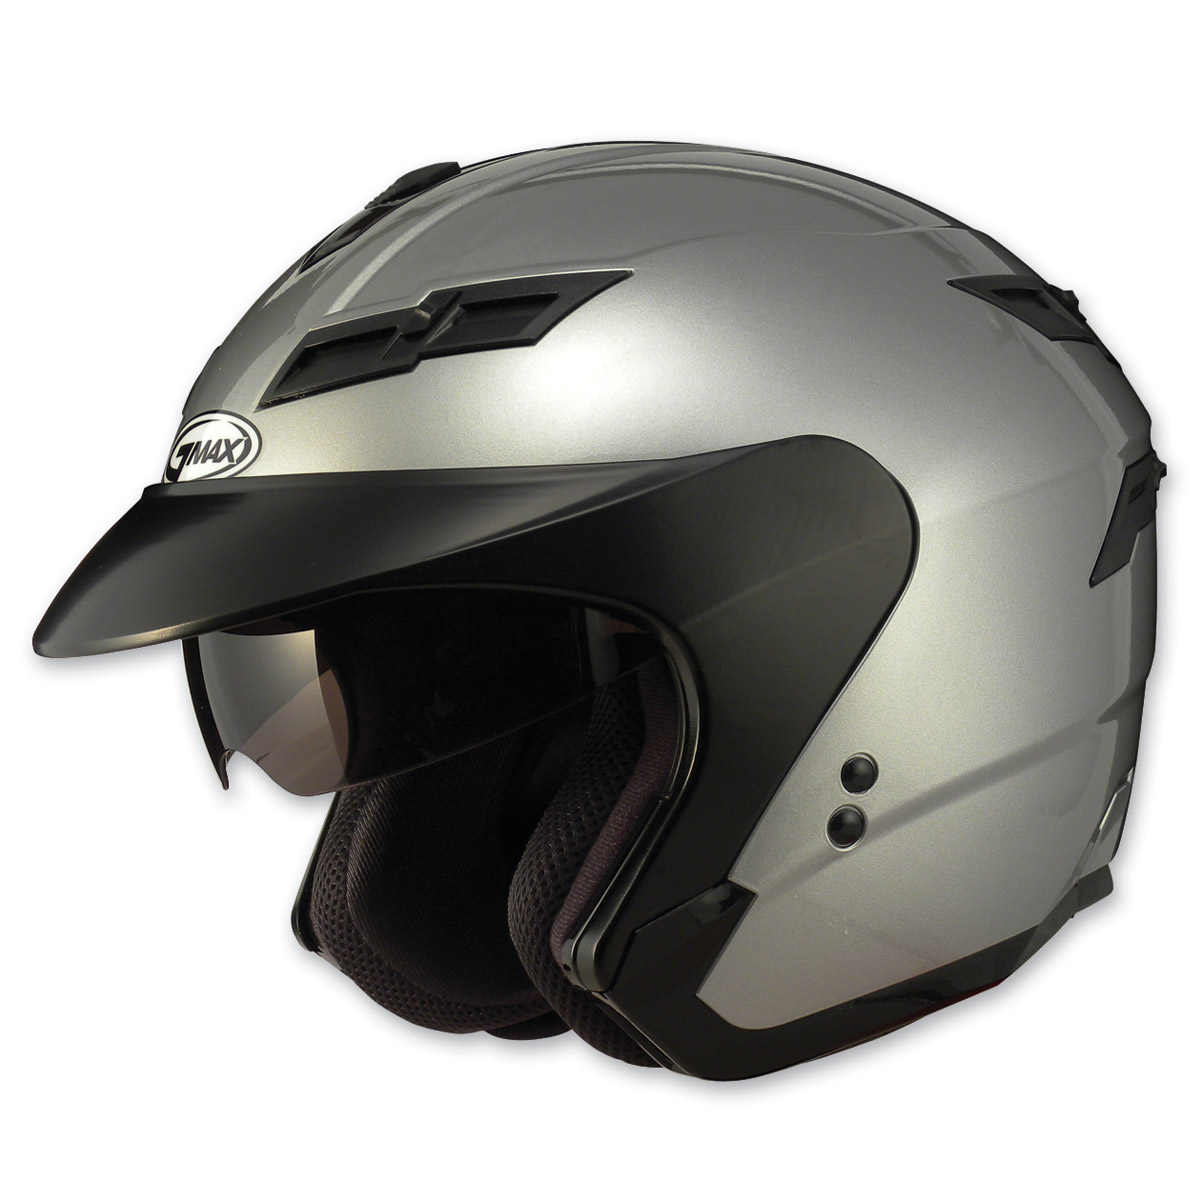 GMAX GM67 Titanium Open Face Helmet